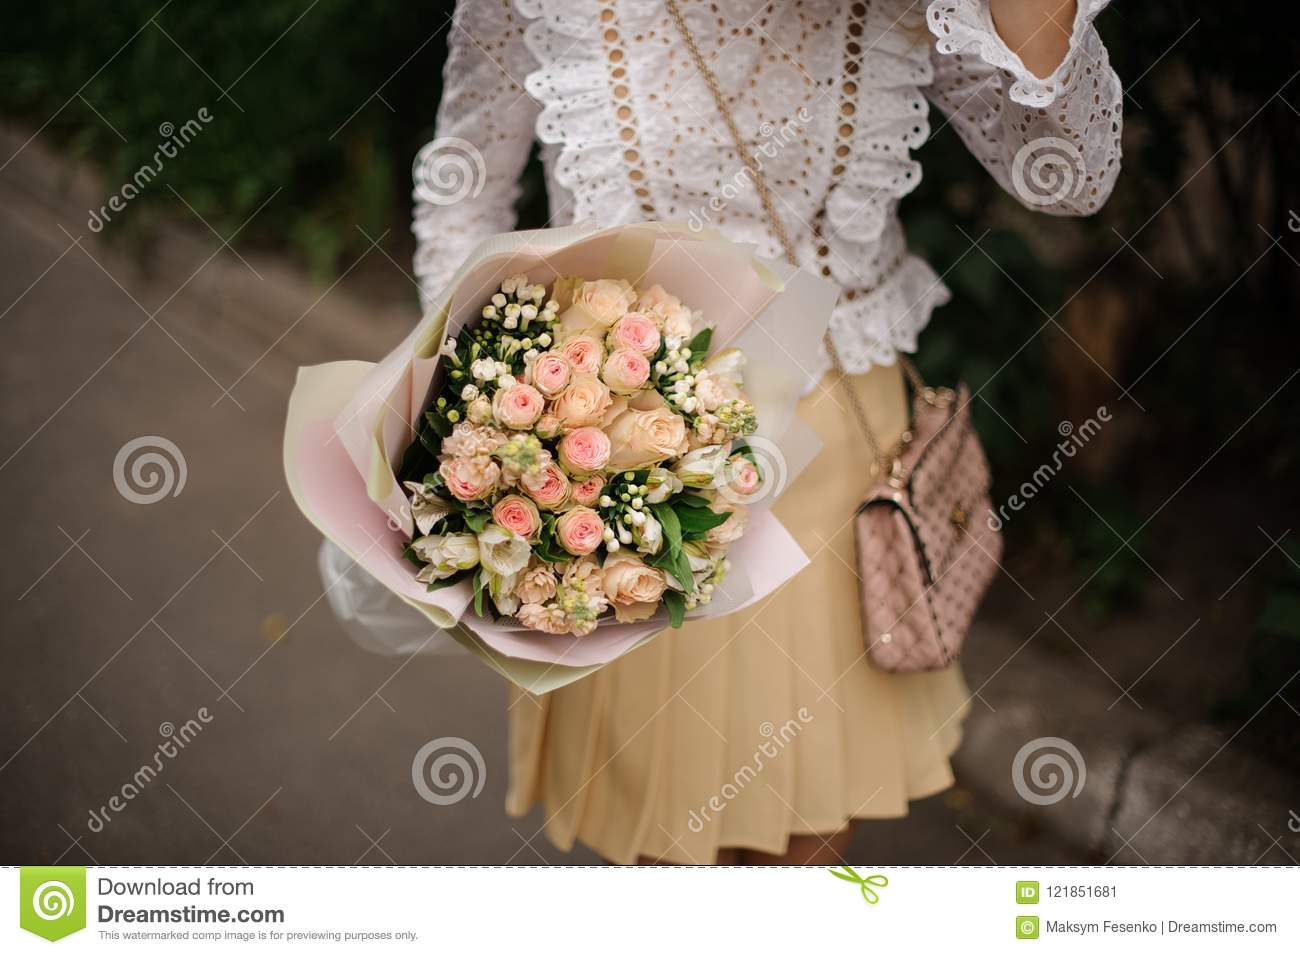 Girl holding a beautiful bouquet of champagne color roses